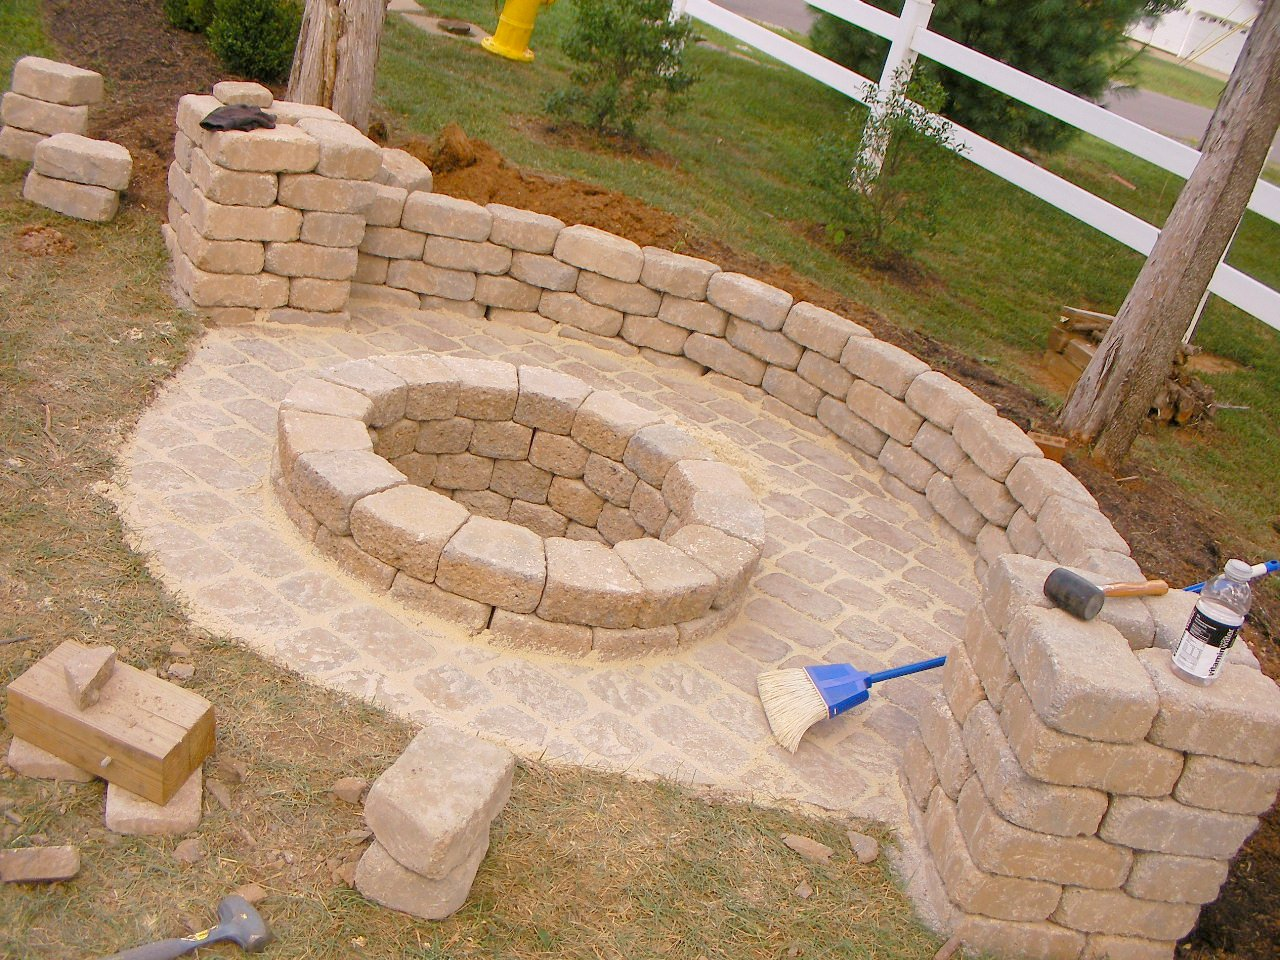 Creatively Luxurious DIY Fire Pit Project Here to Enhance ... on Backyard Fire Pit Ideas Diy id=43551